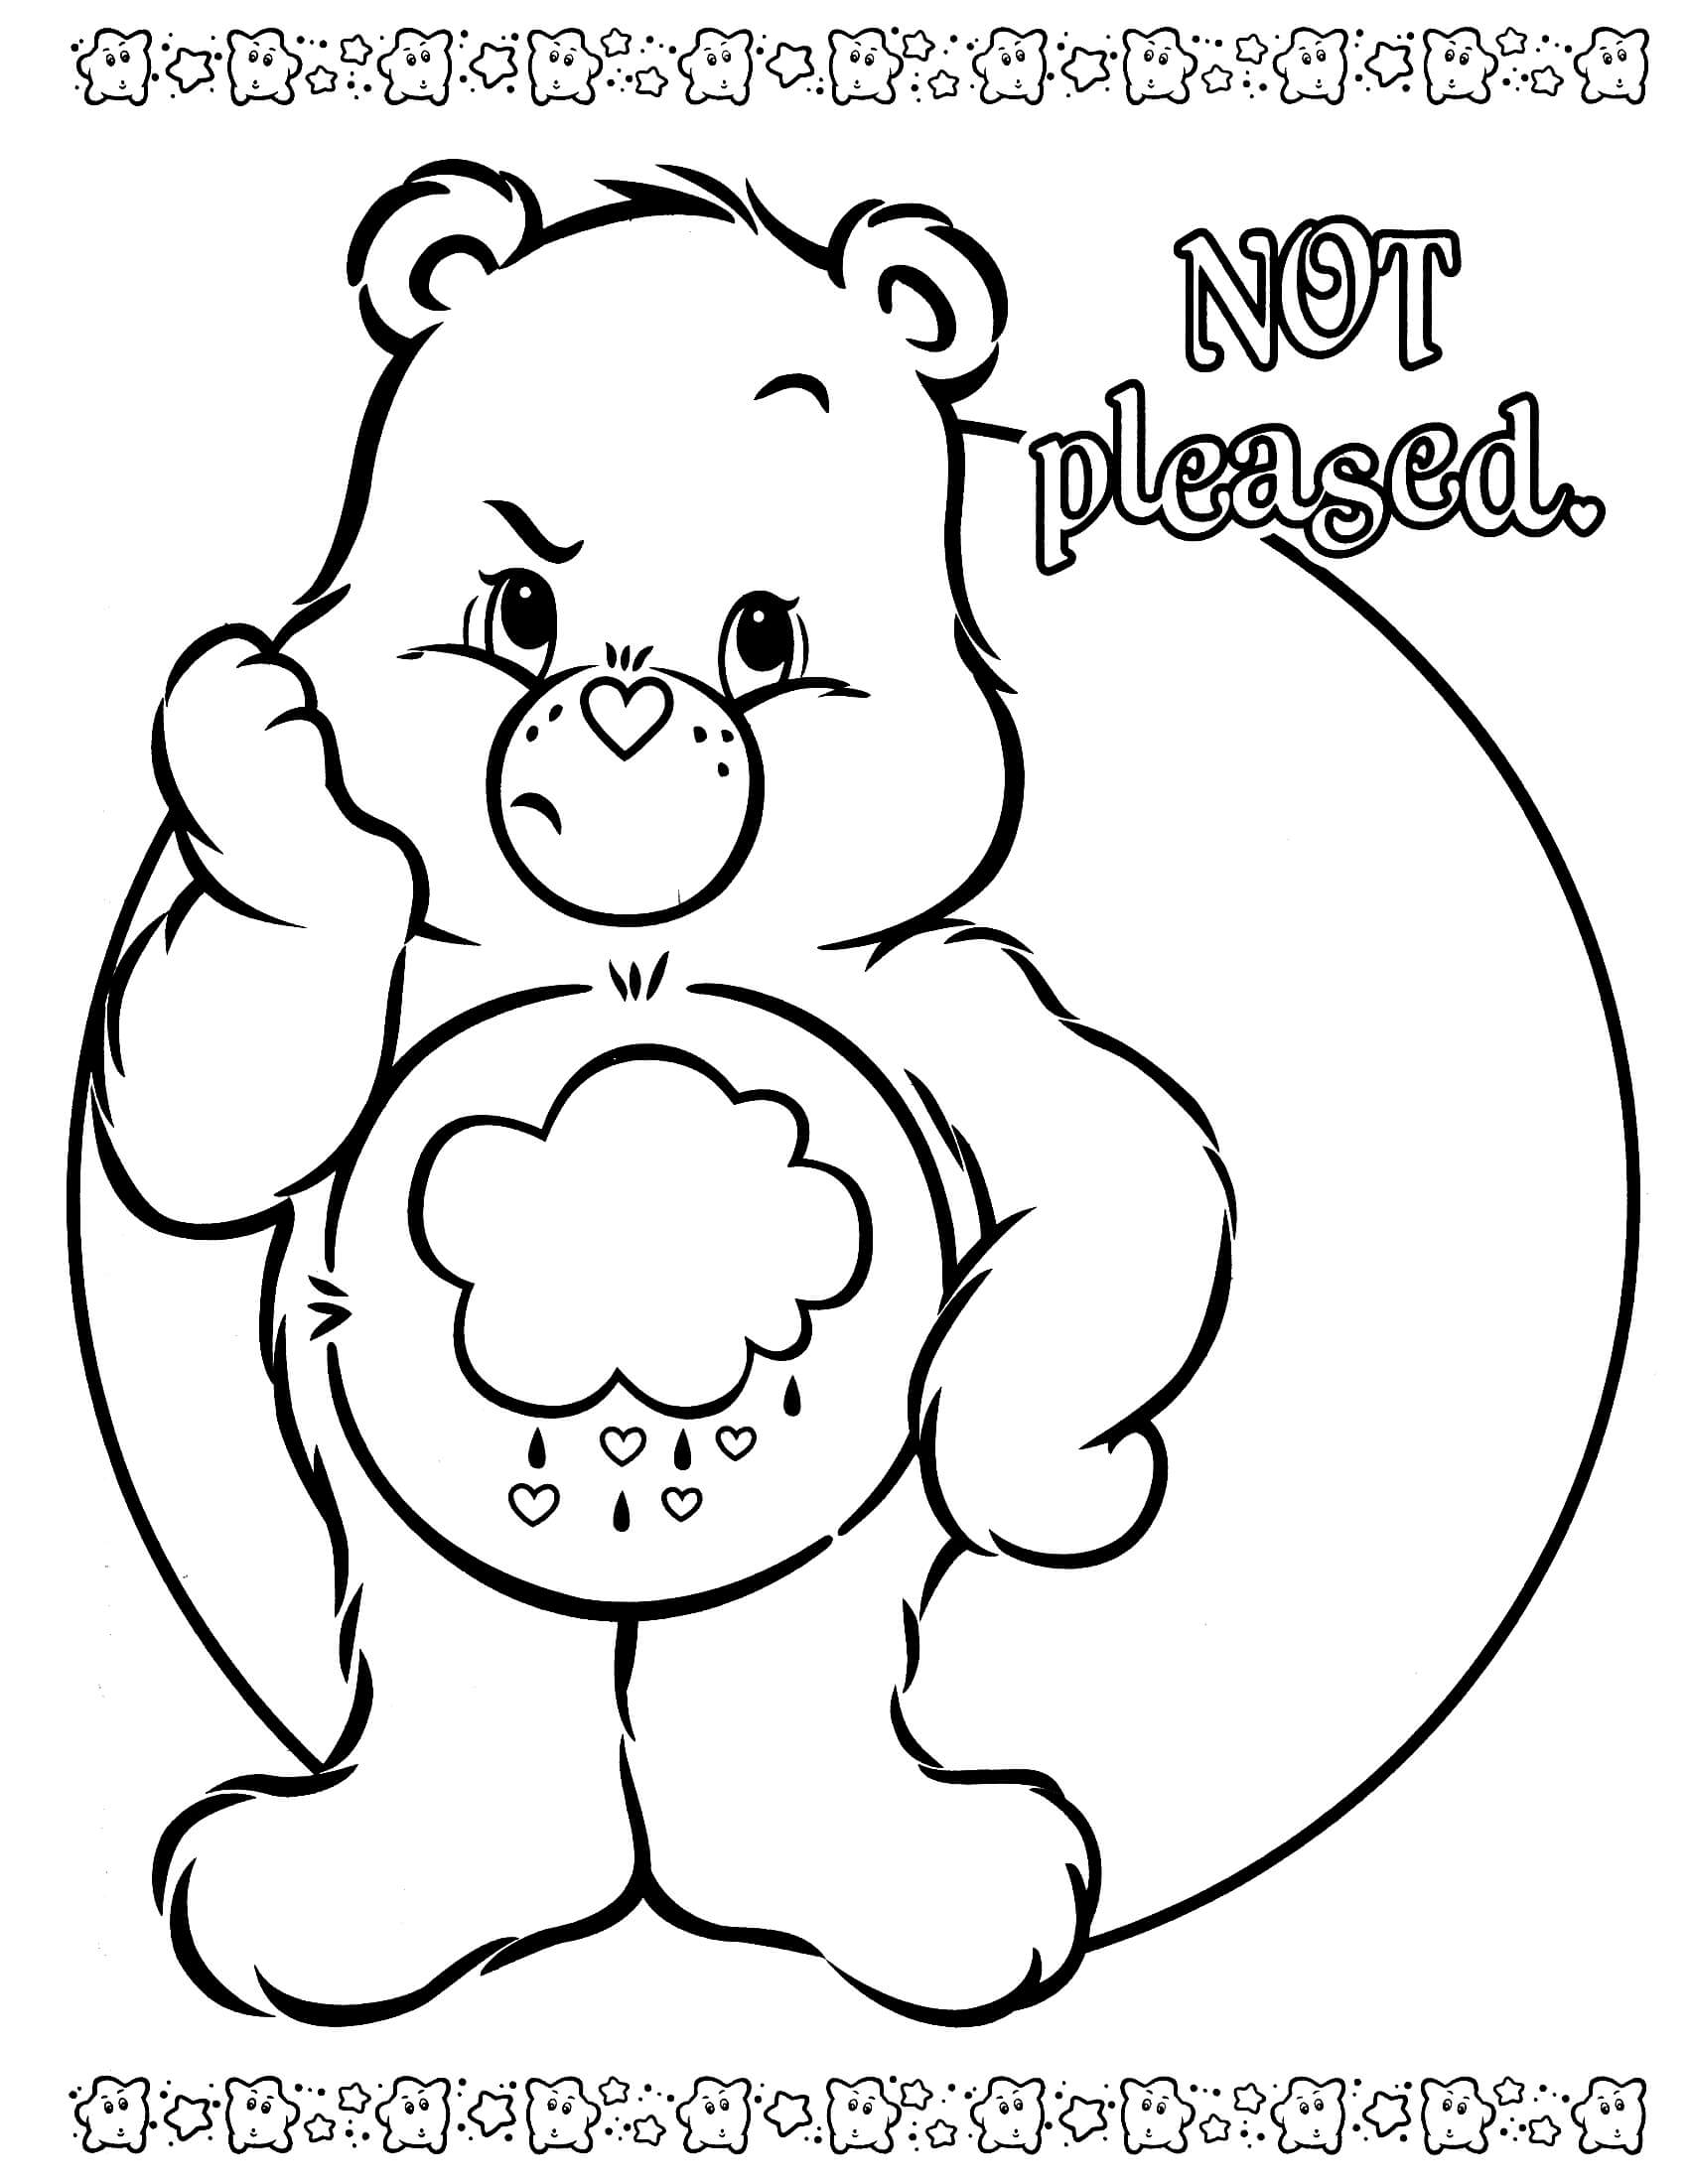 easter coloring pages to print - care bears coloring page 13